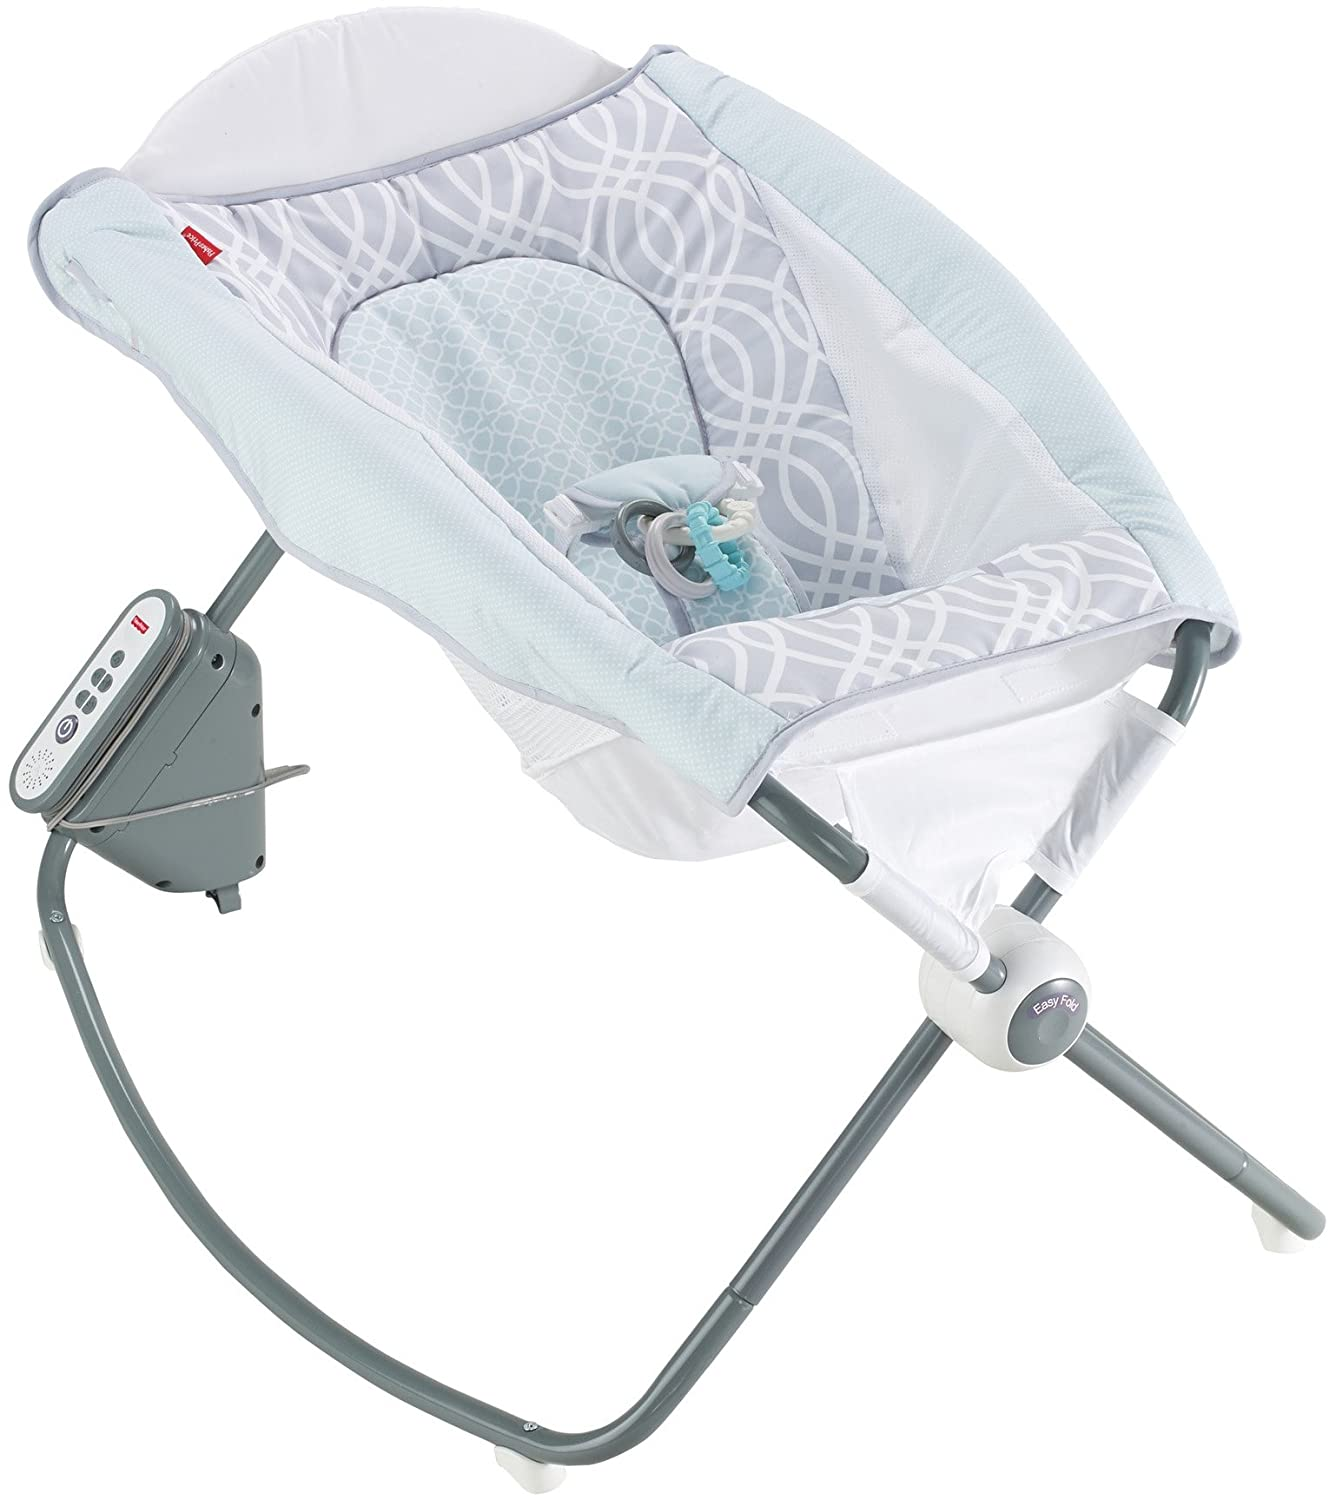 sleeper and fisher price com bassinet amazon portable safety n dp rock baby play